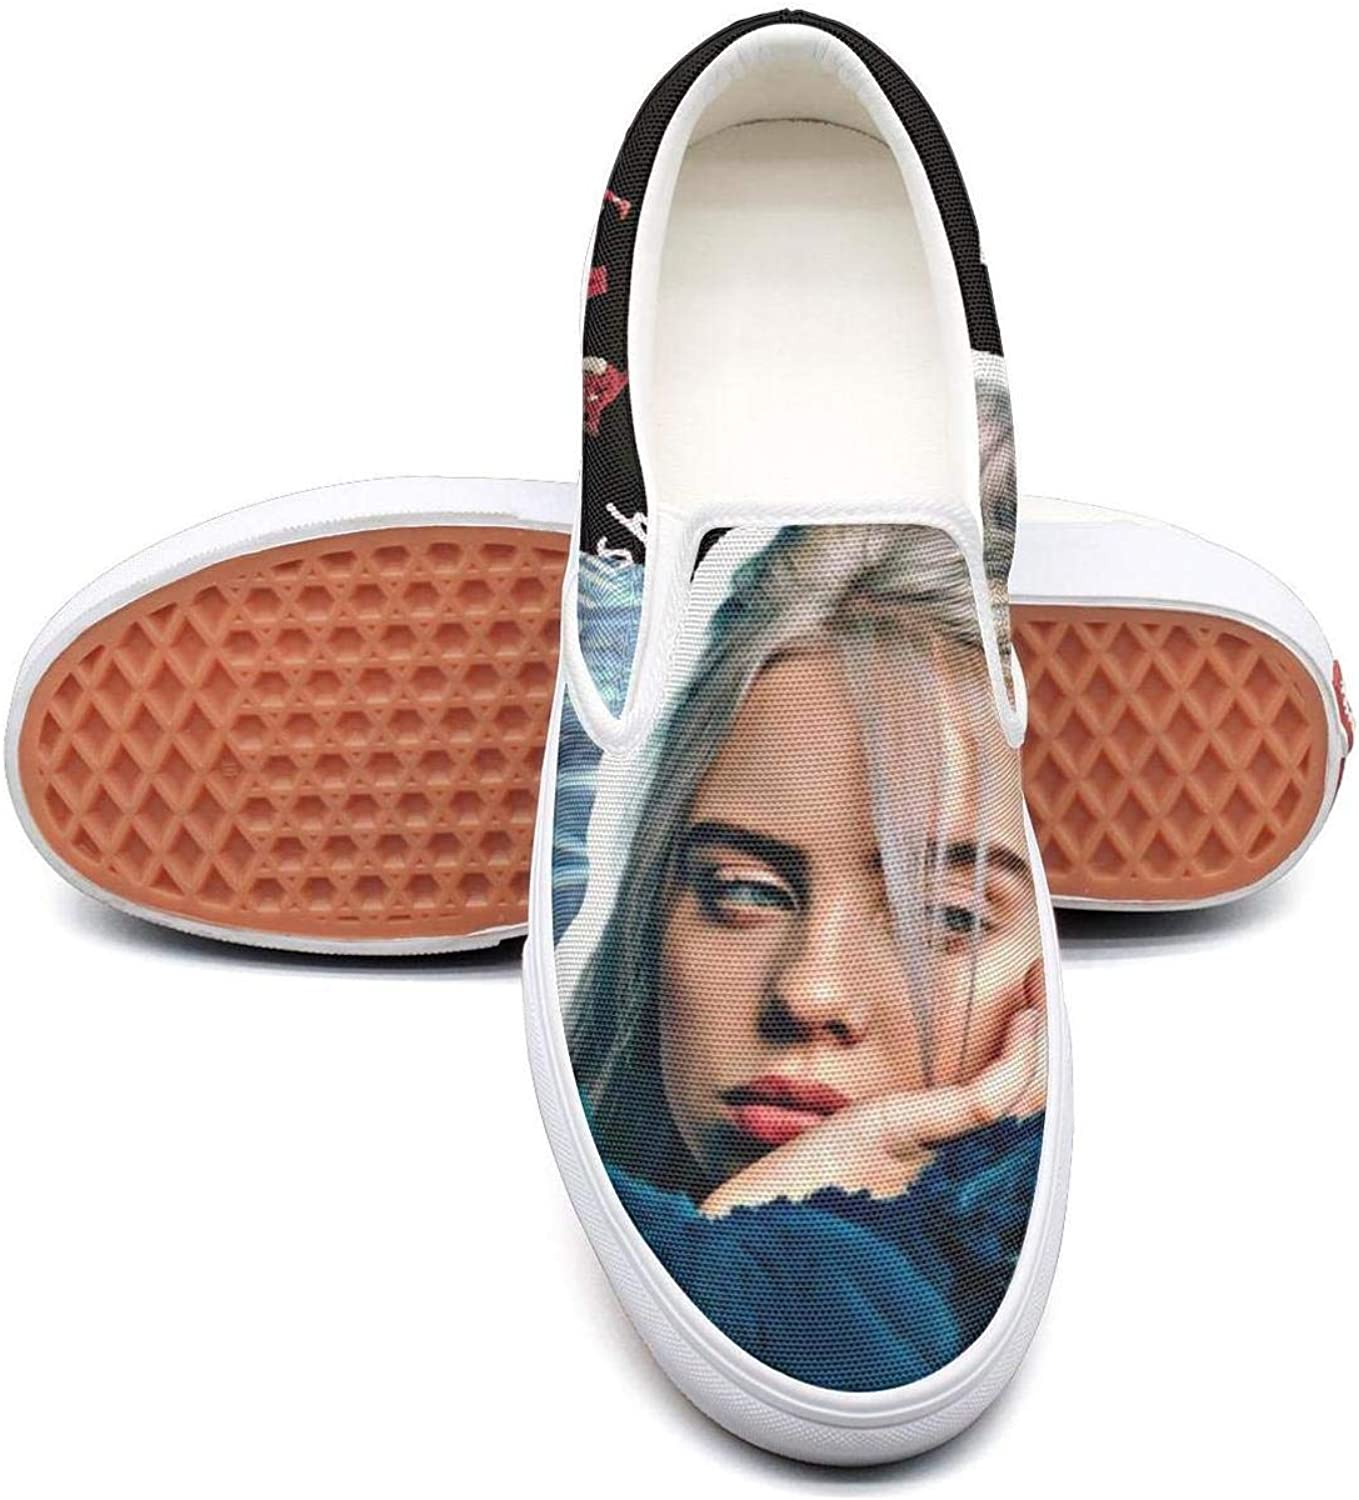 Merry-XMAS Fashion Sneakers Billie-Eilish for Woman Print Shock Absorption Running shoes